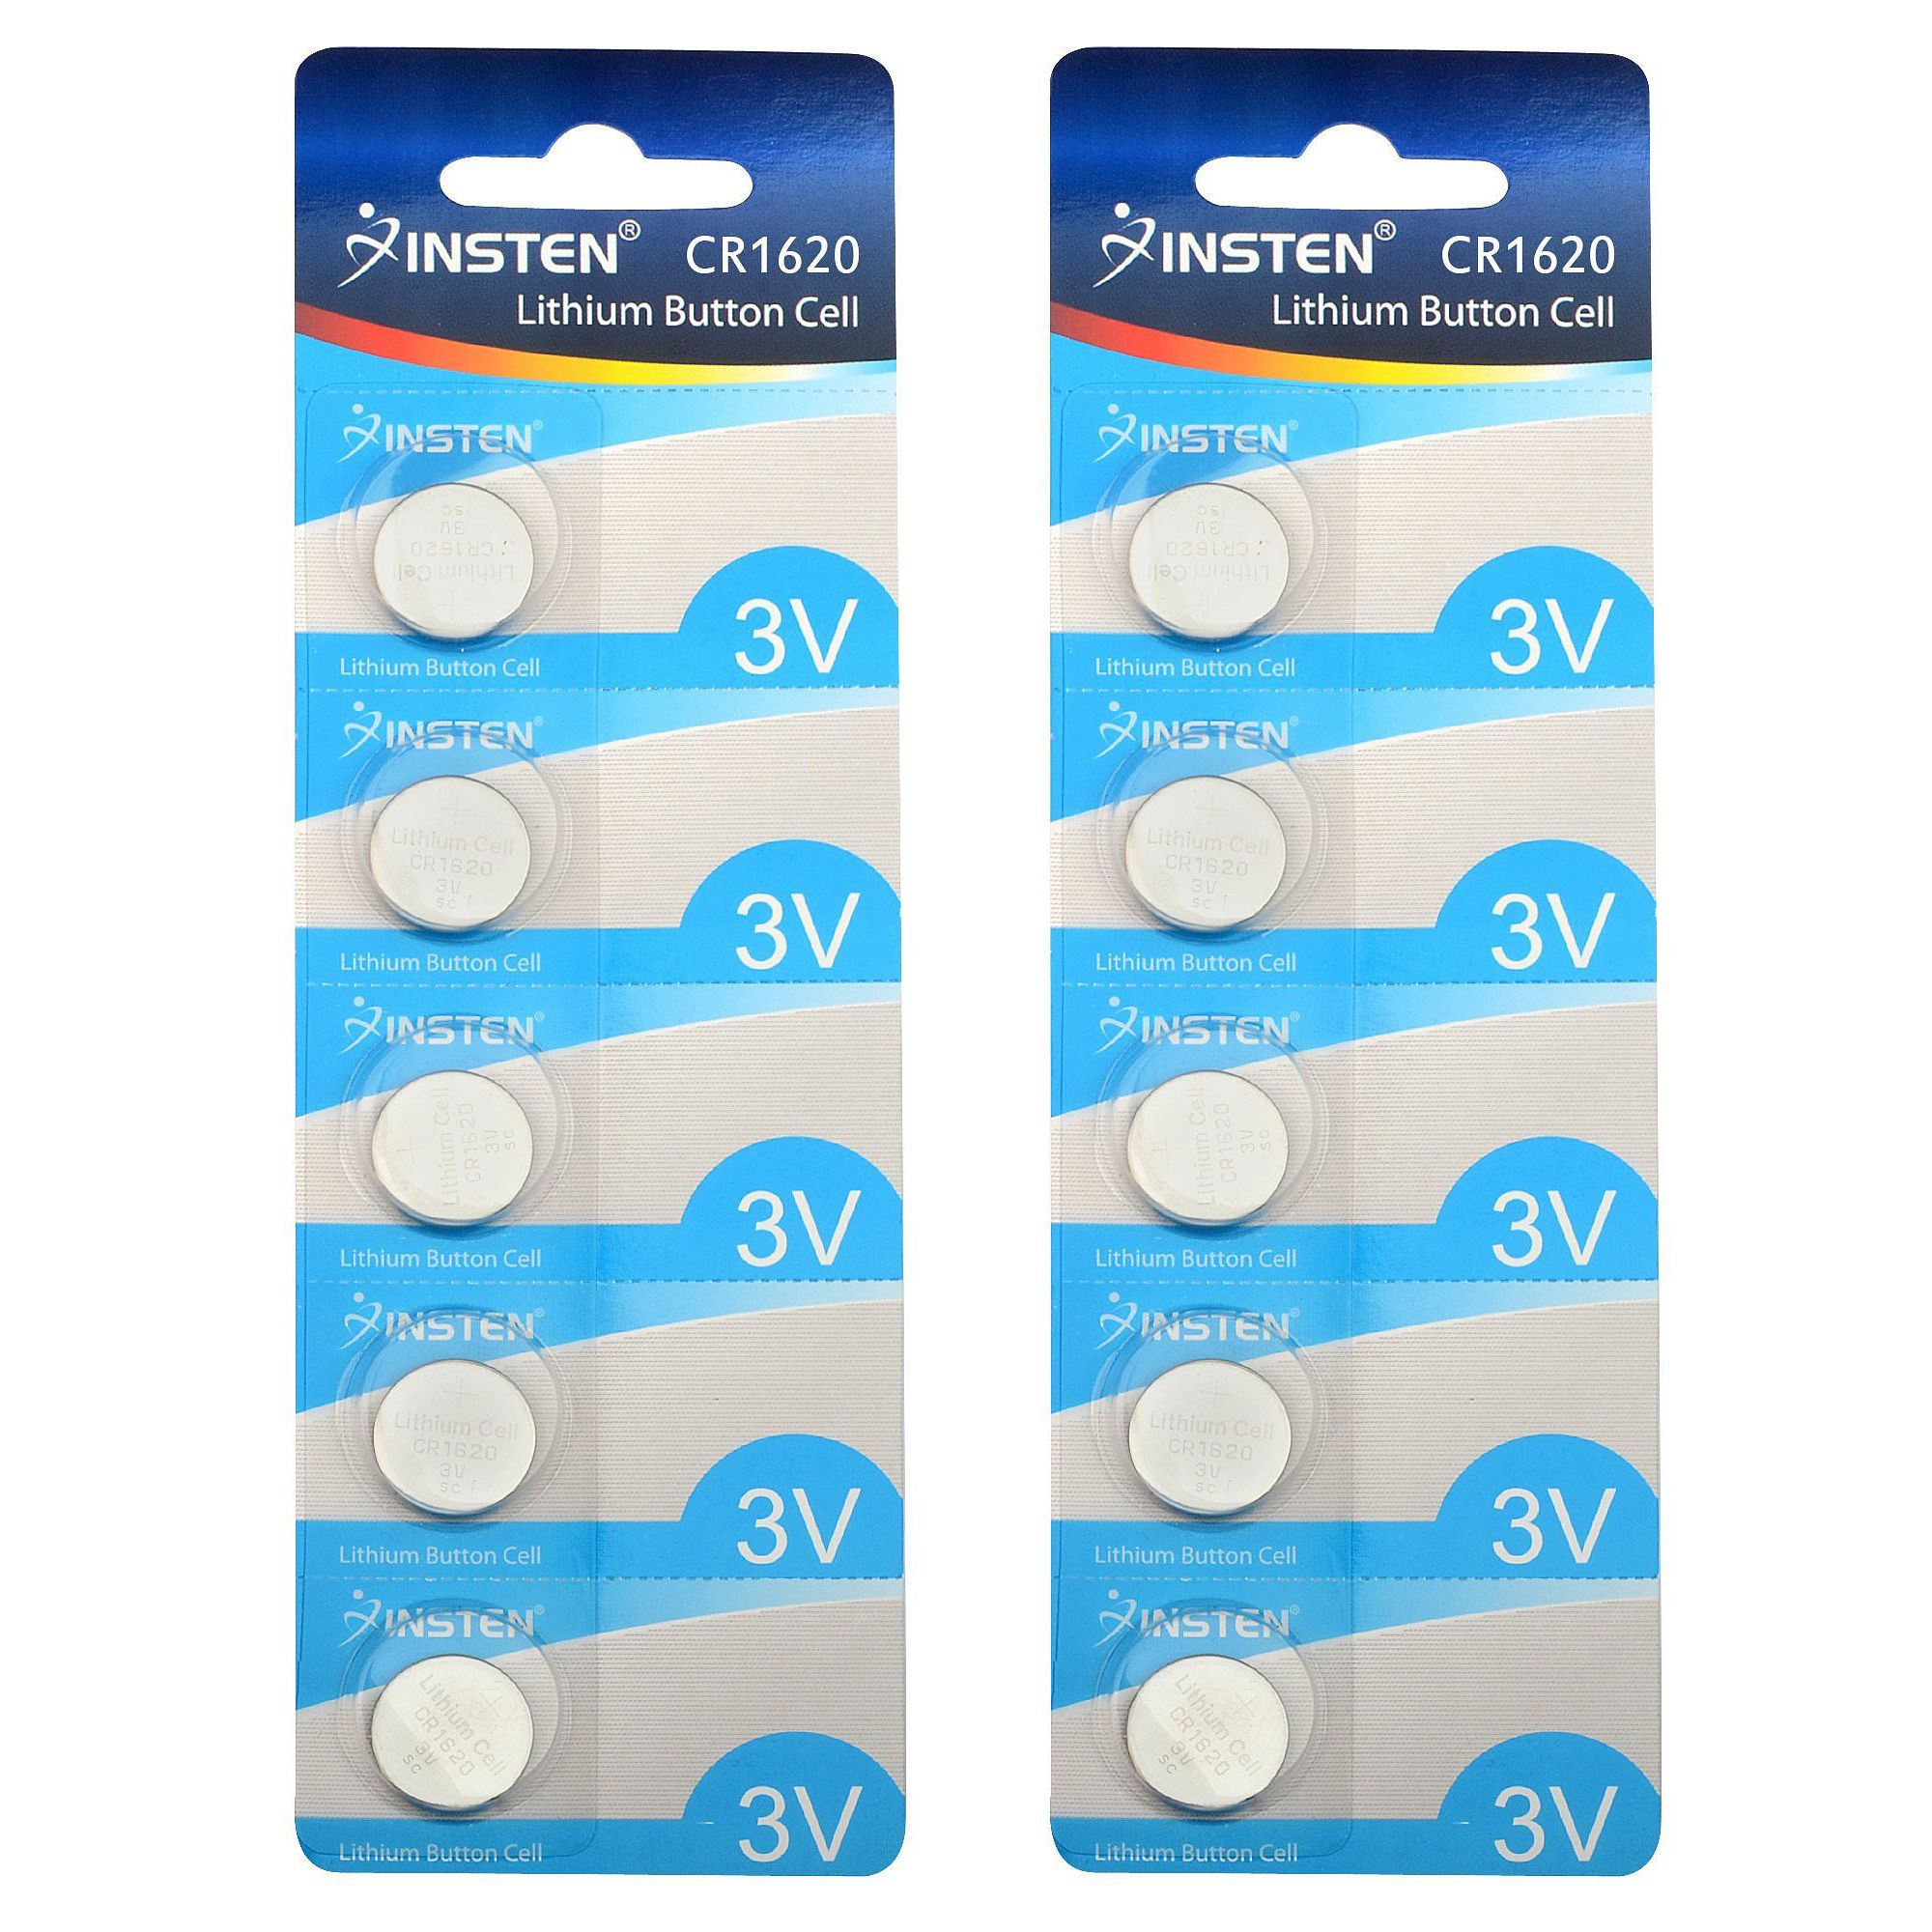 Insten CR1620 3V Lithium Batteries Coin Button Cell Watch Battery (Pack of 10)